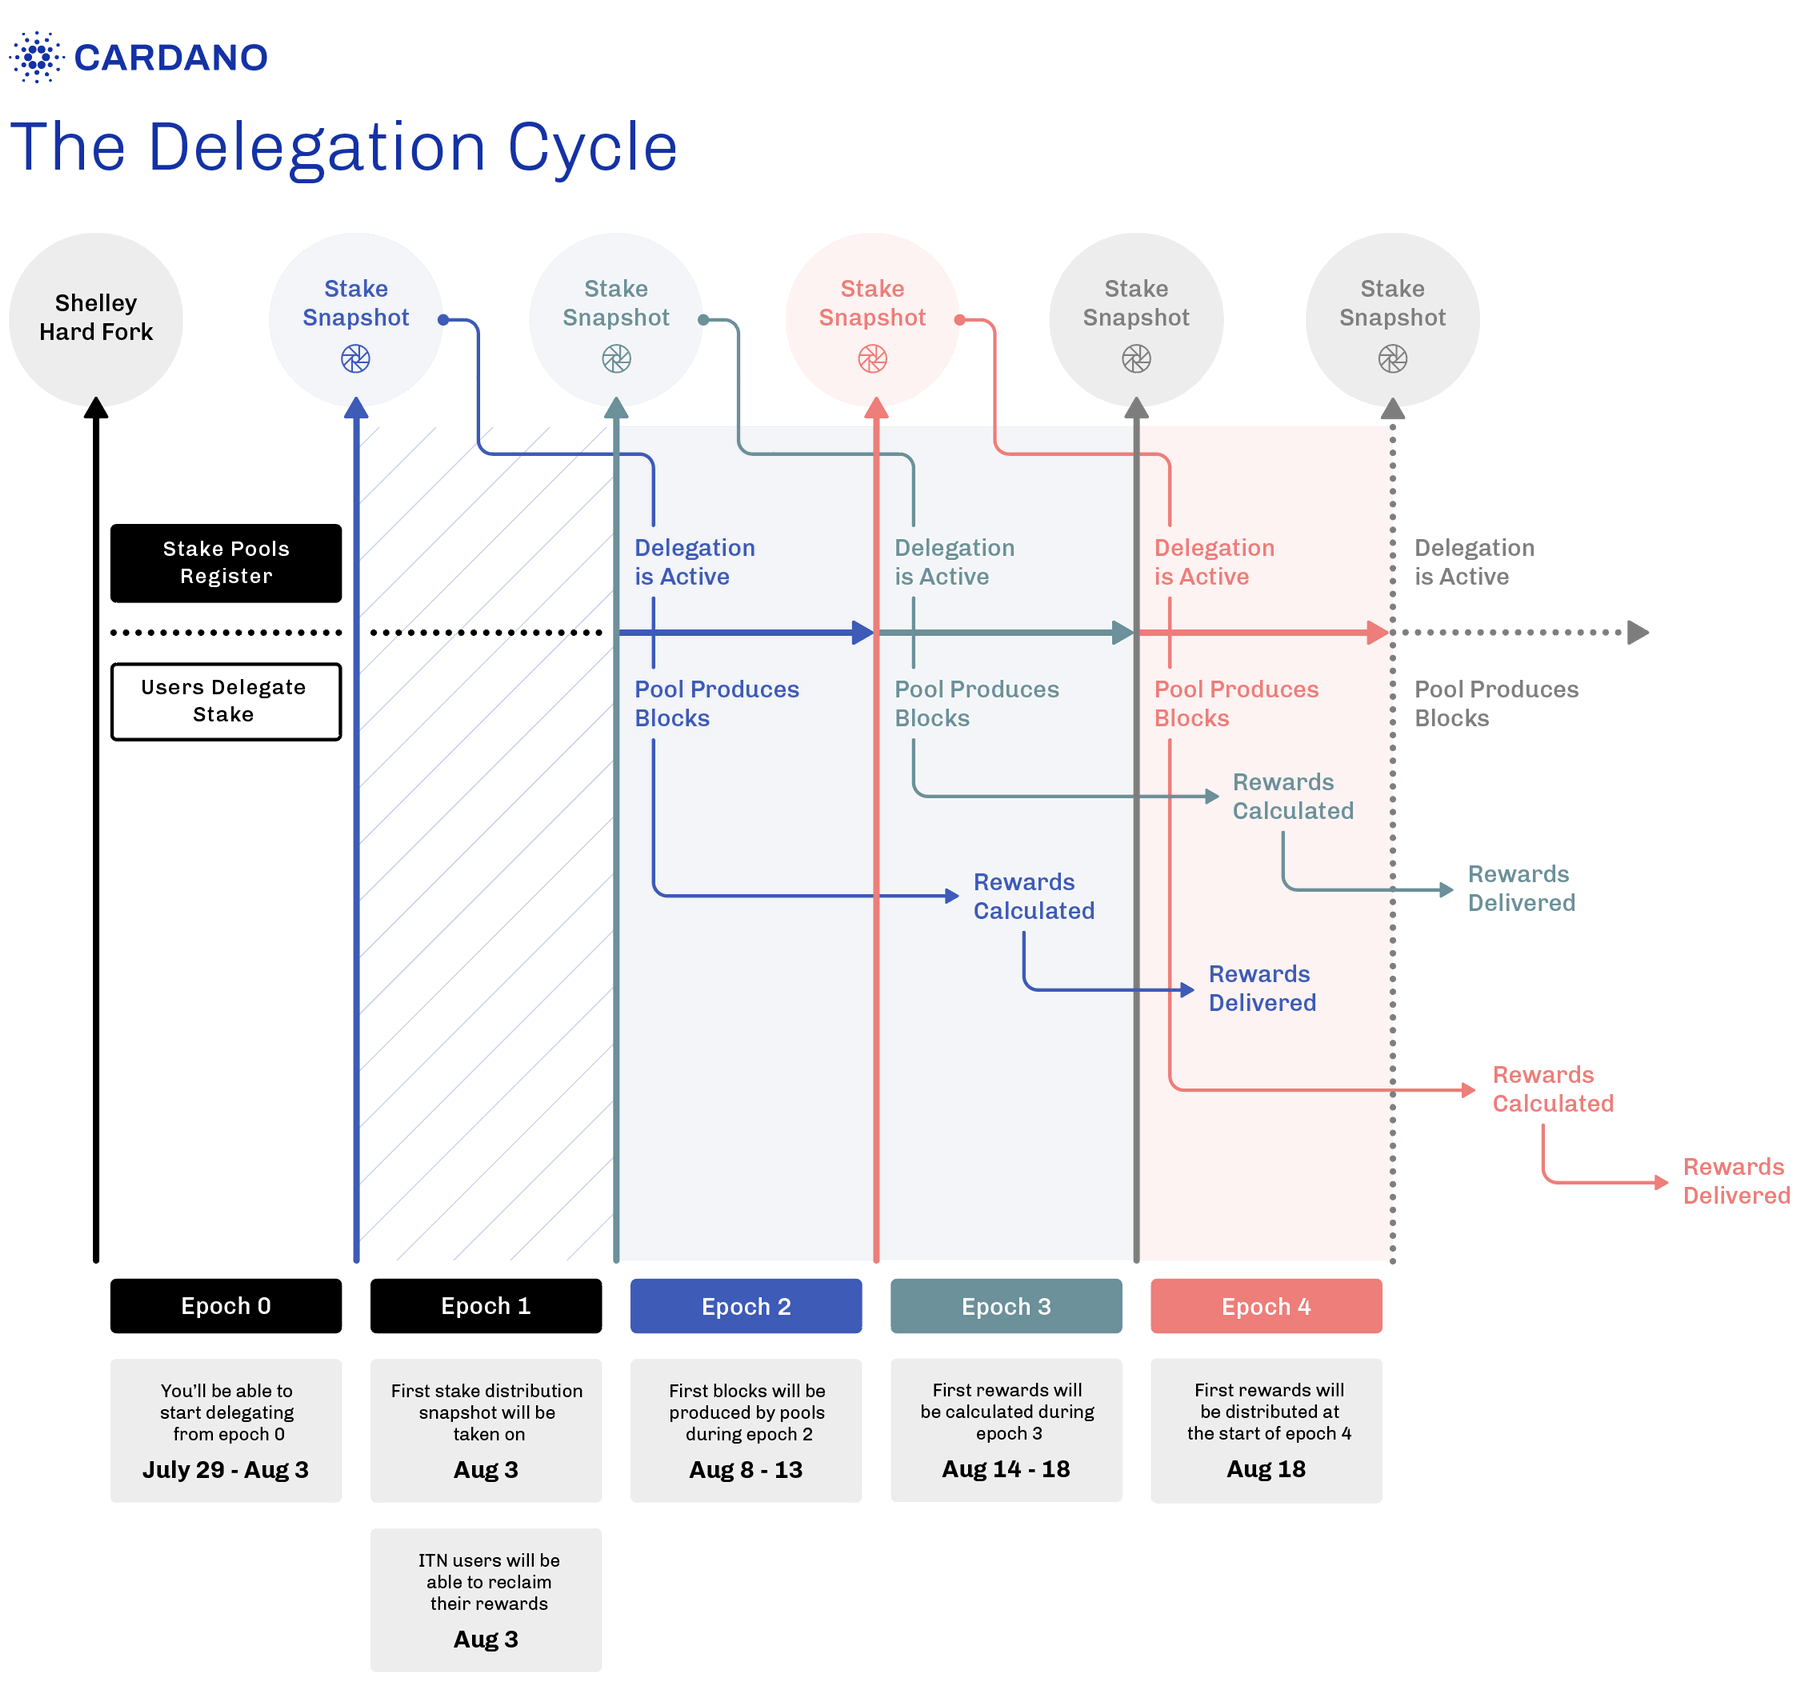 cardano delegation cycle